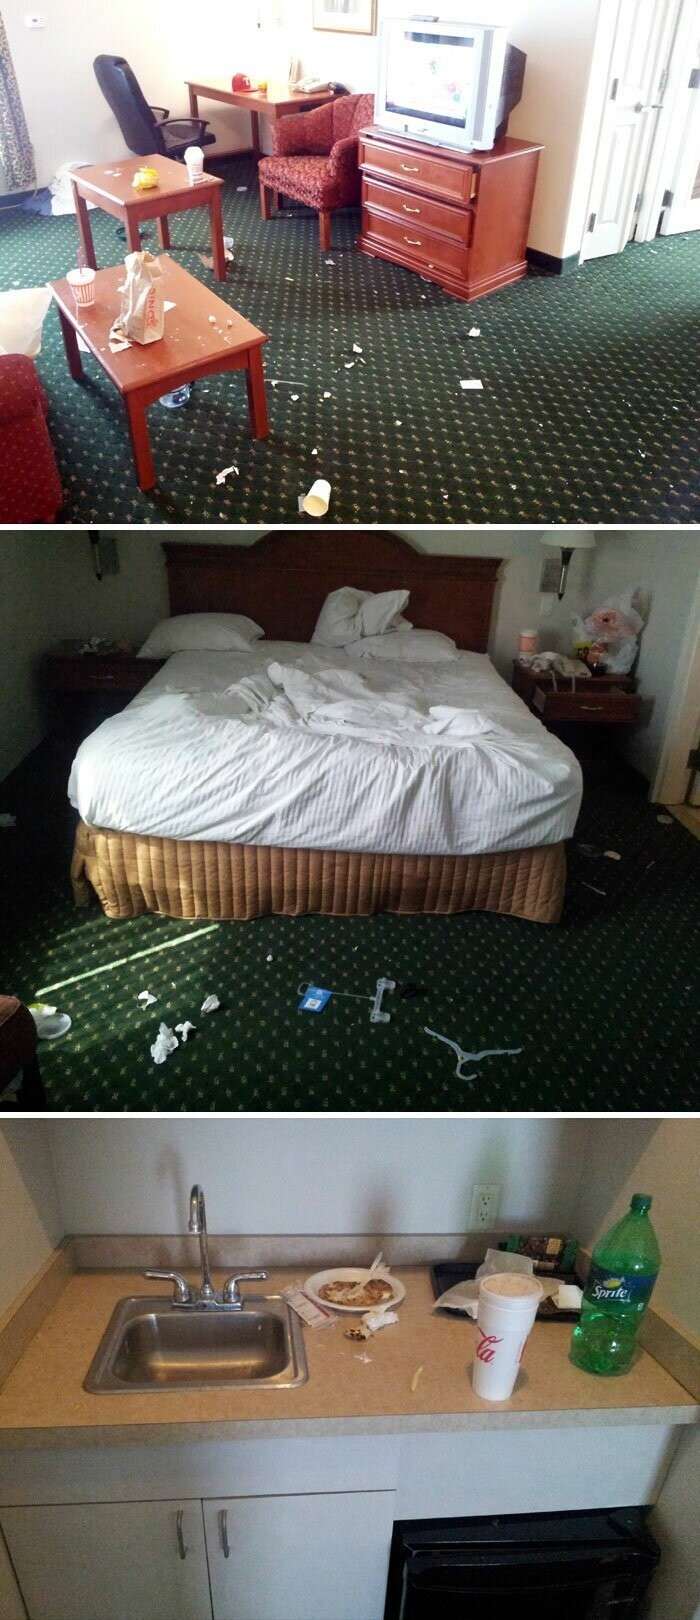 #26 This Is The Room Of A Hotel Guest That Stayed For 3 Days. No Pets, No Kids. Just One Dude With A Mission To Be Disgusting